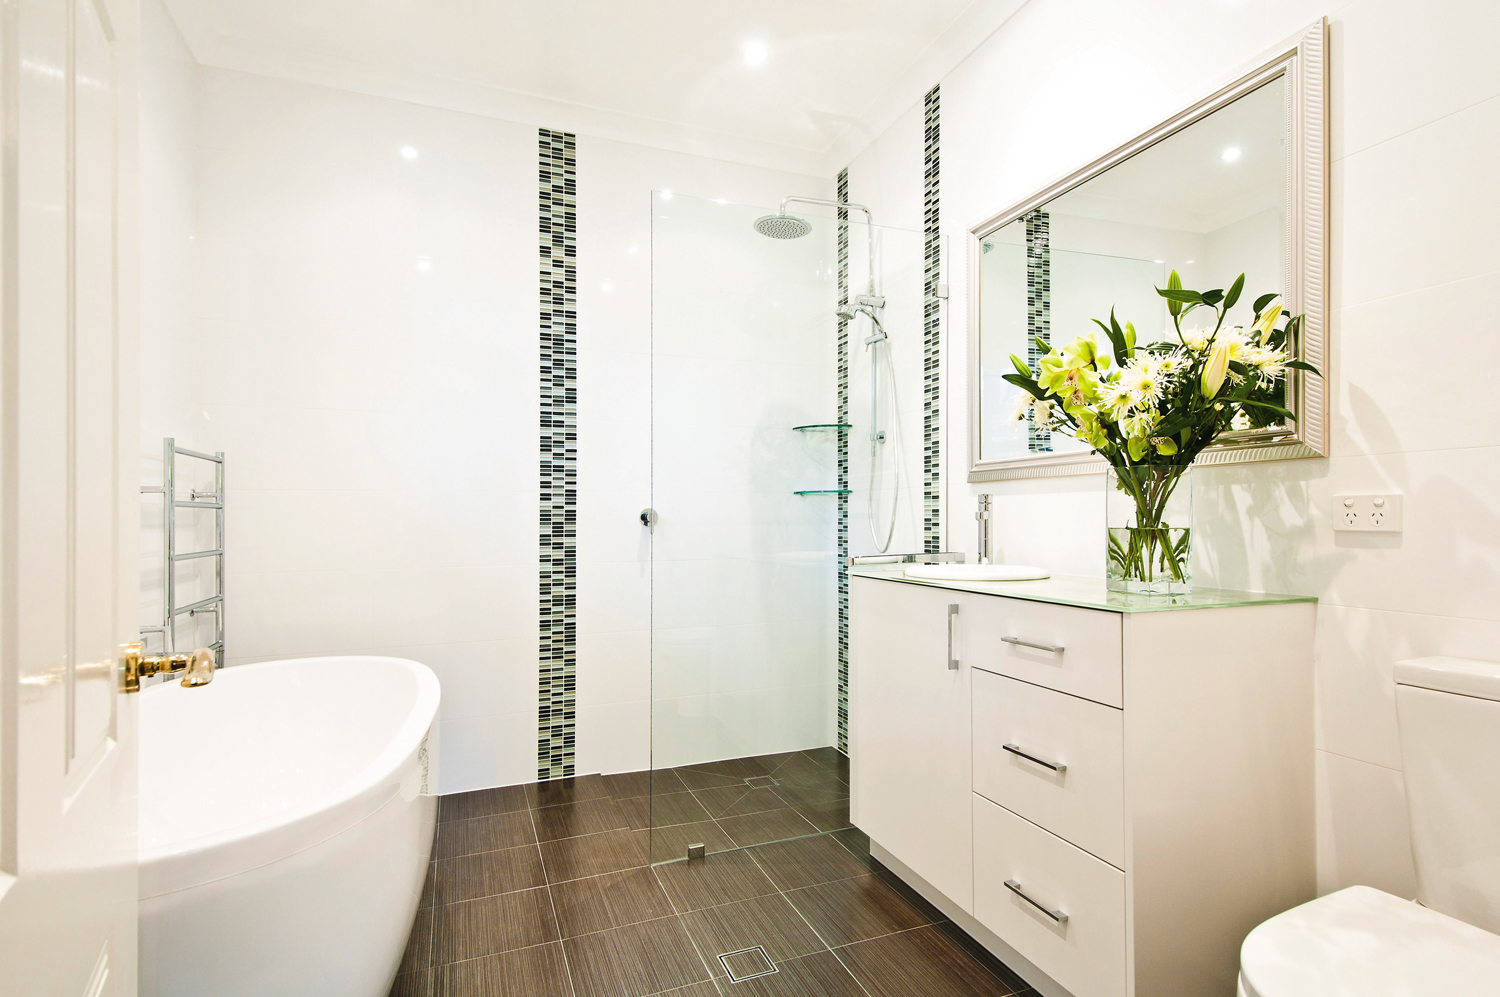 Effortless and elegant bathroom design - Completehome